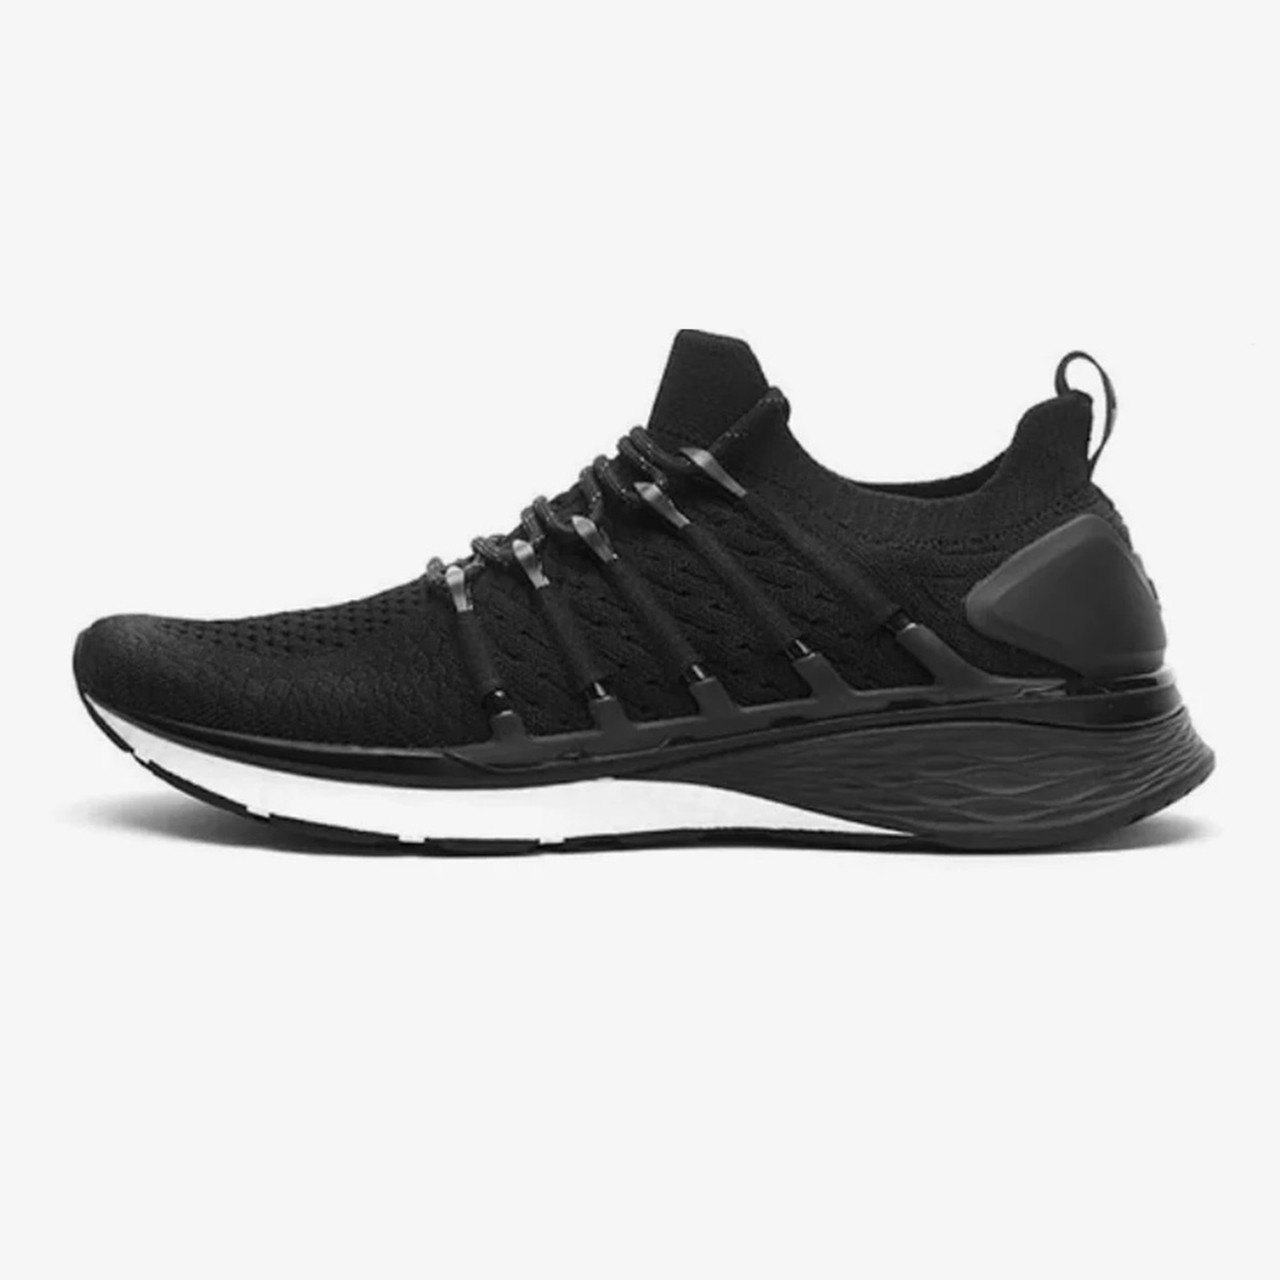 Кроссовки Xiaomi Mijia Sports Shoes 3 Black Черные